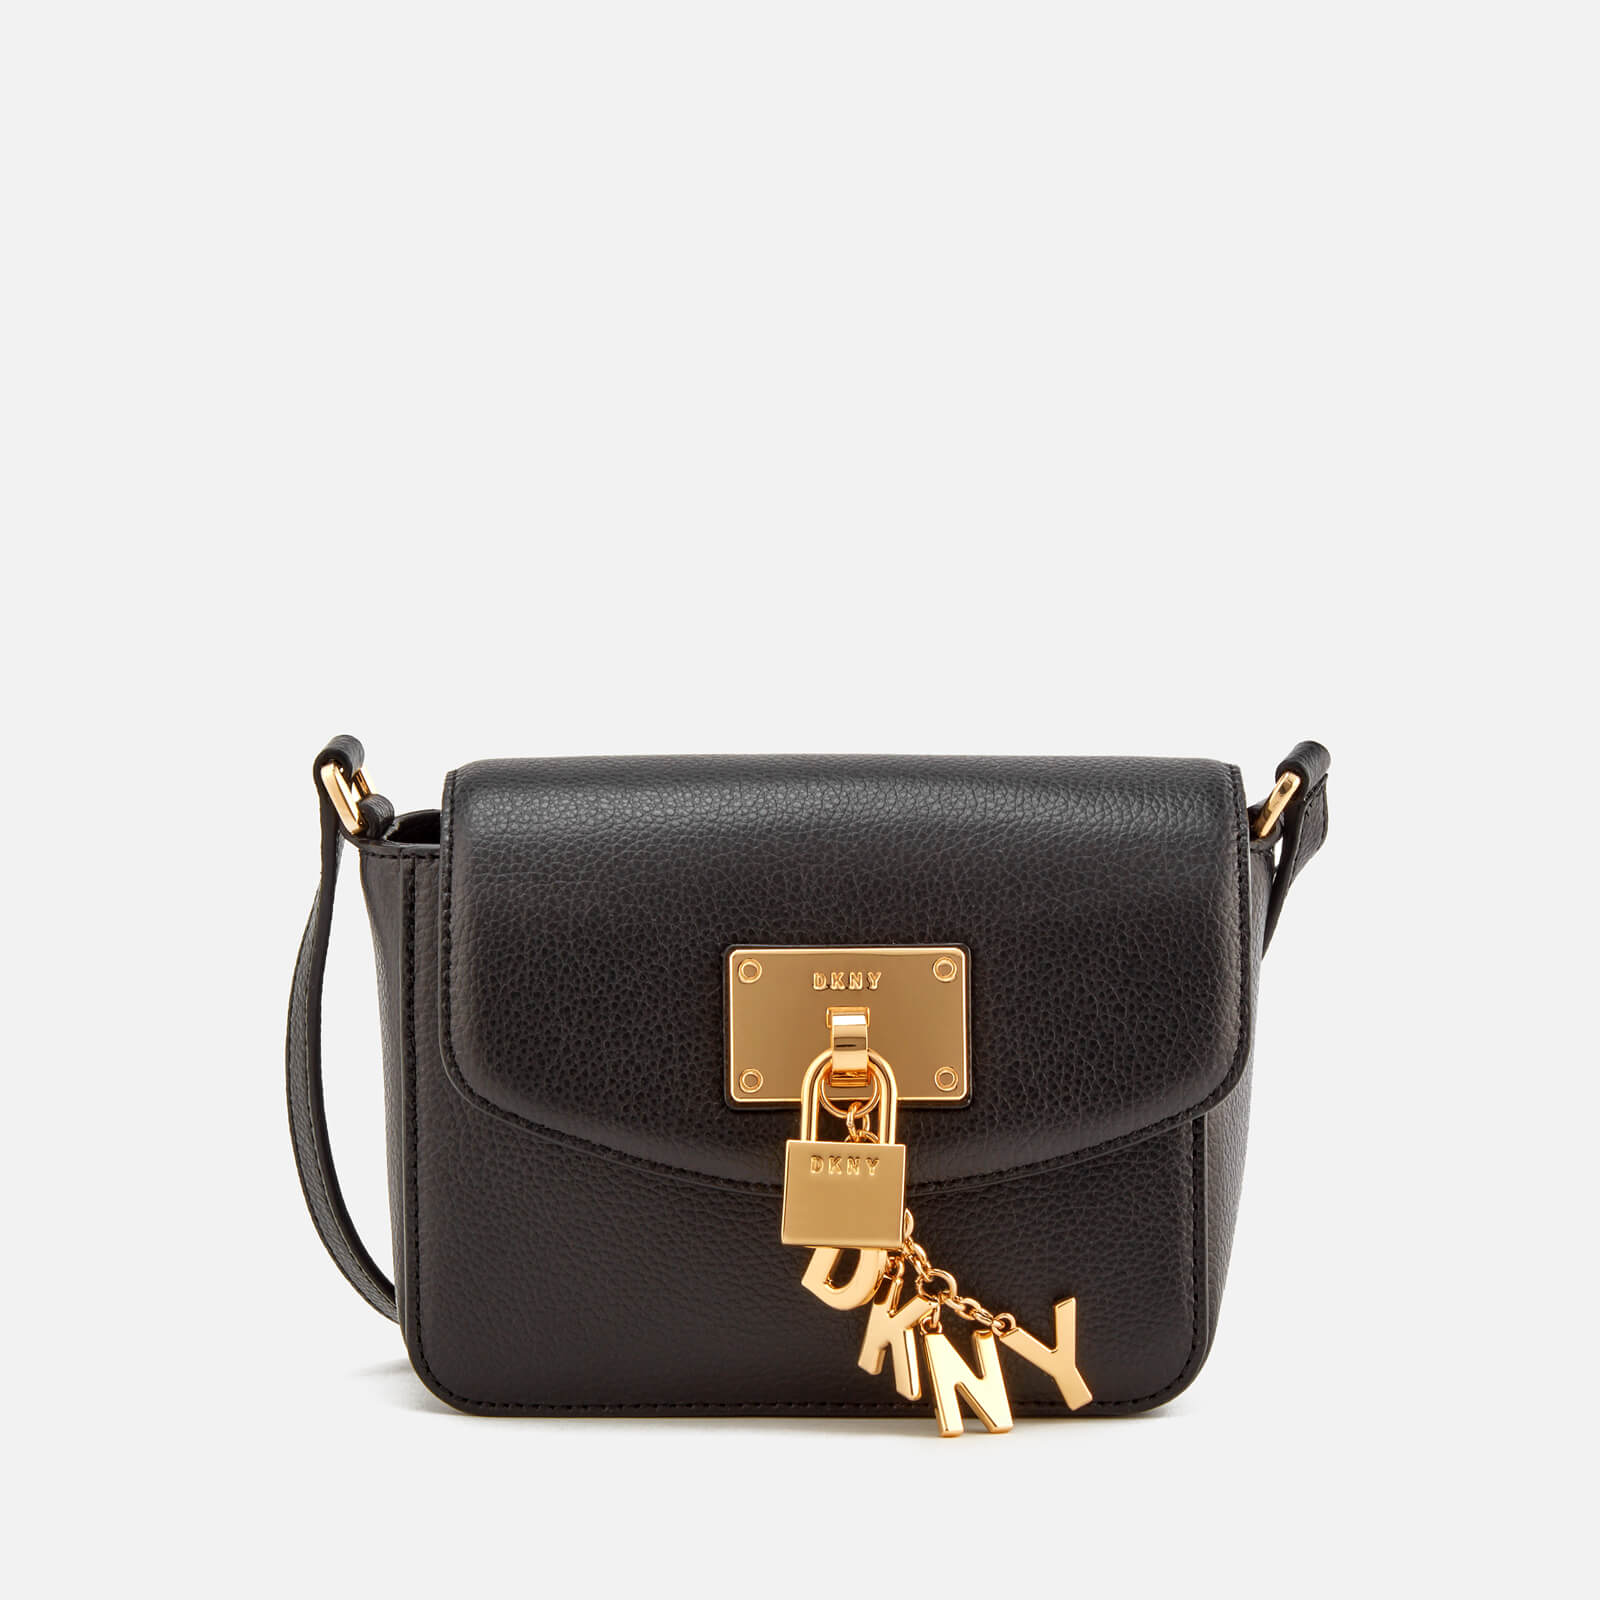 8c58382f0 DKNY Women's Elissa Small Flap Cross Body Bag - Black - Free UK Delivery  over £50